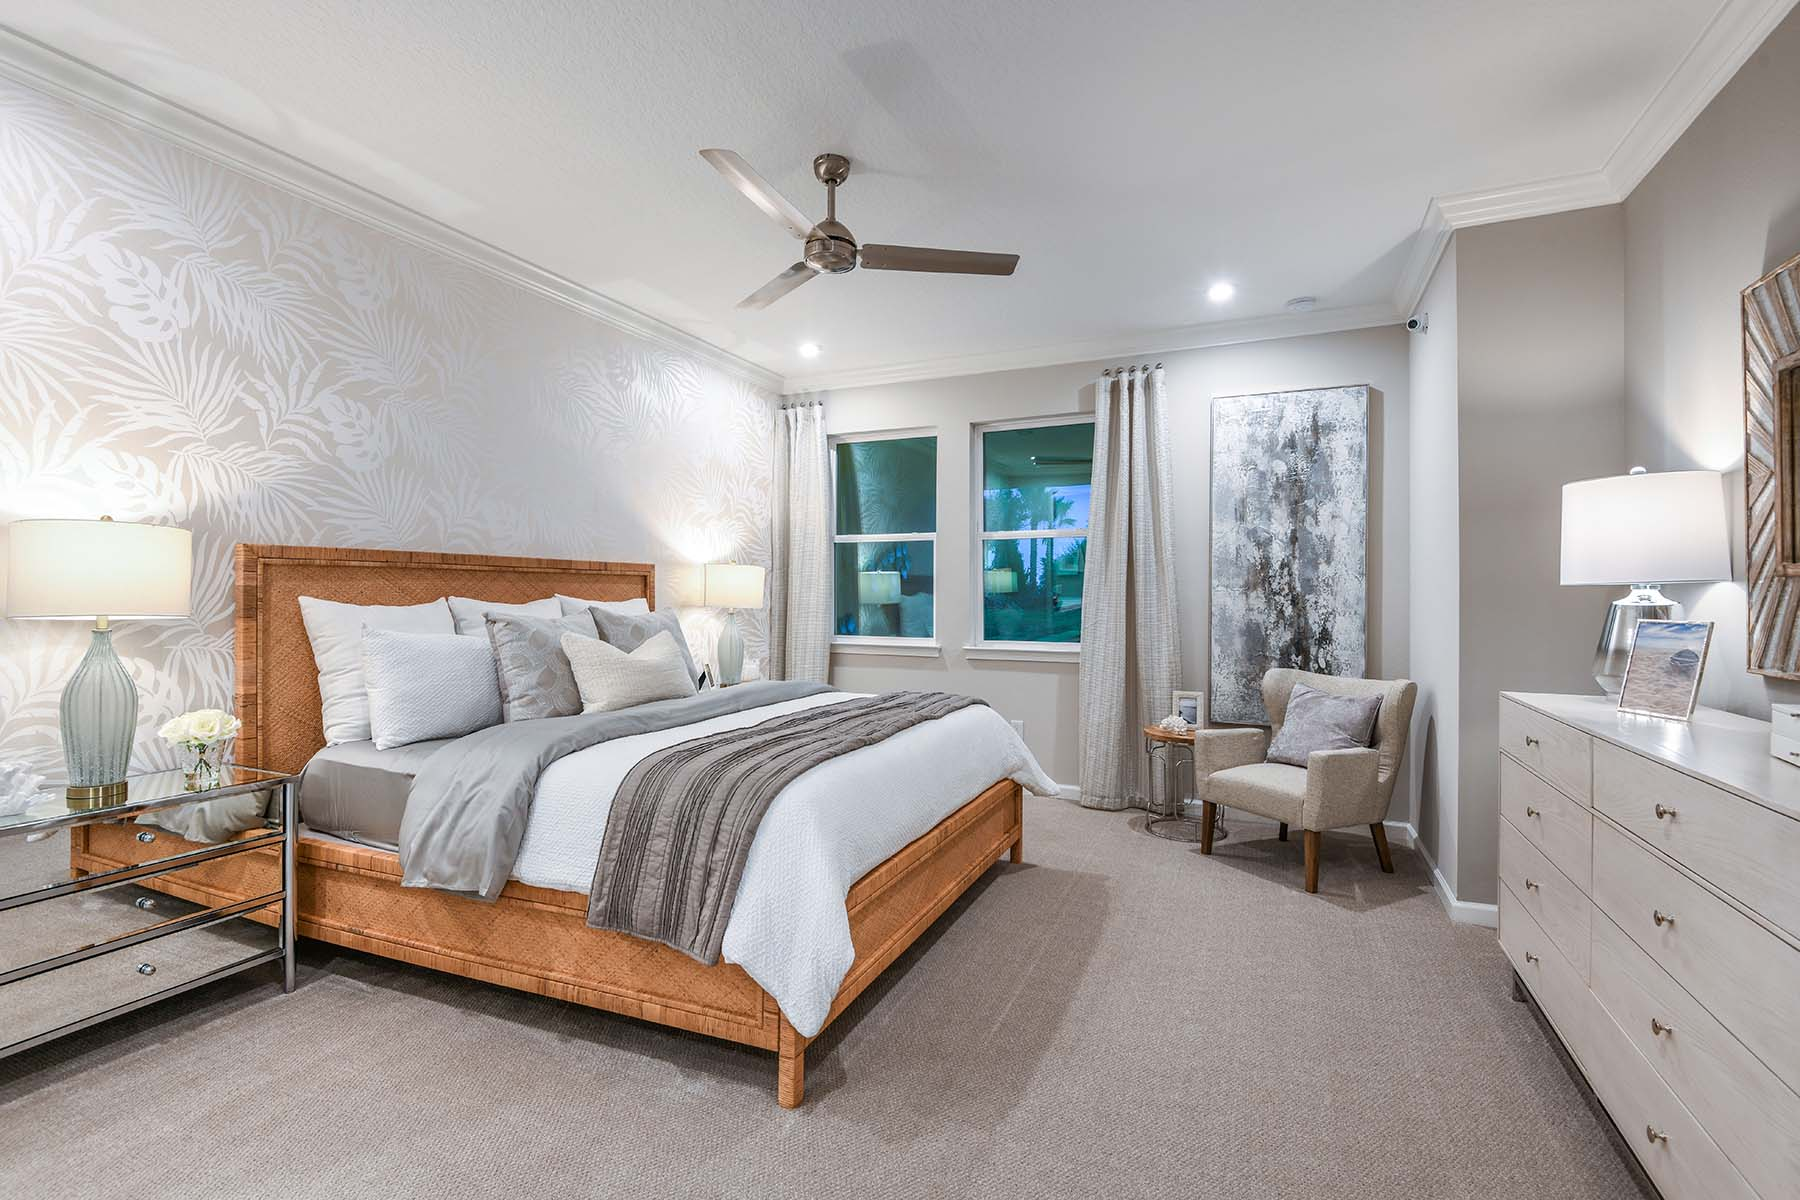 Driftwood II End Plan Bedroom at Harmony at Lakewood Ranch in Lakewood Ranch Florida by Mattamy Homes